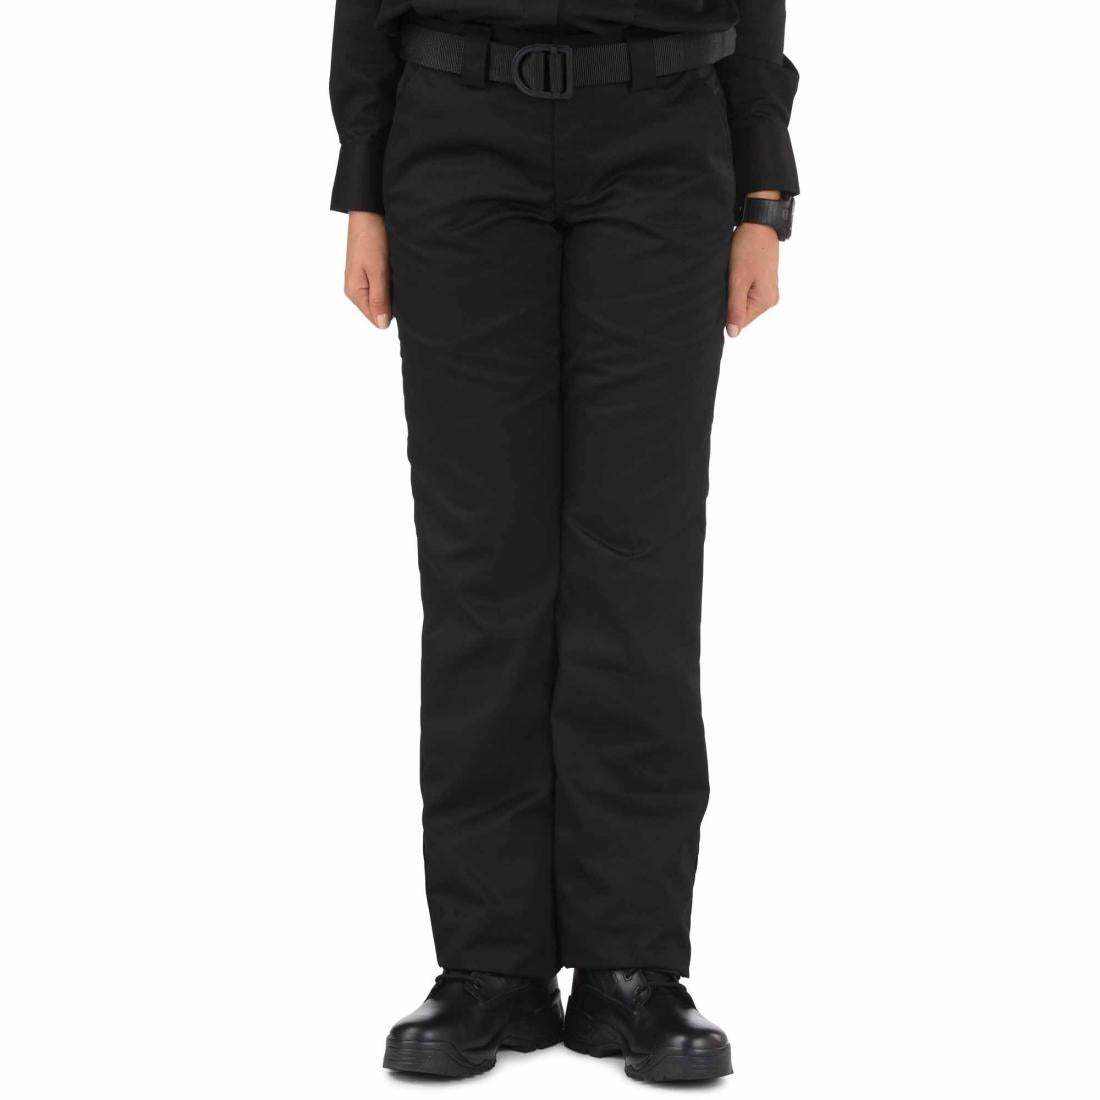 5.11 Tactical 64308W Women's Twill PDU Class - A Pant Black